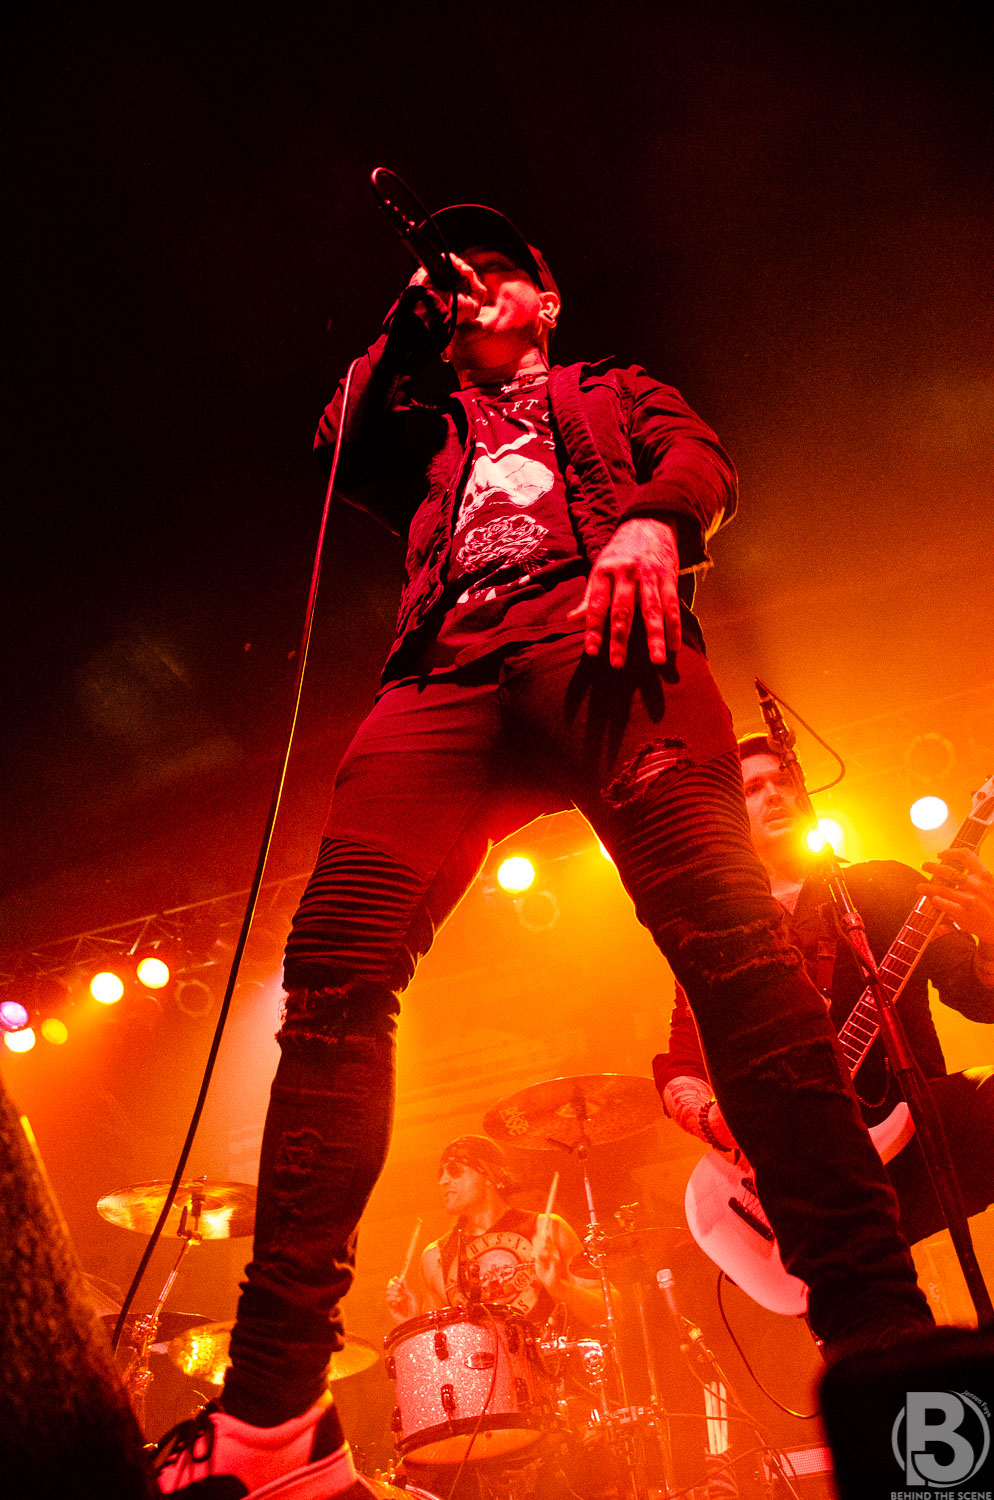 030319 Escape the Fate JF-9.jpg